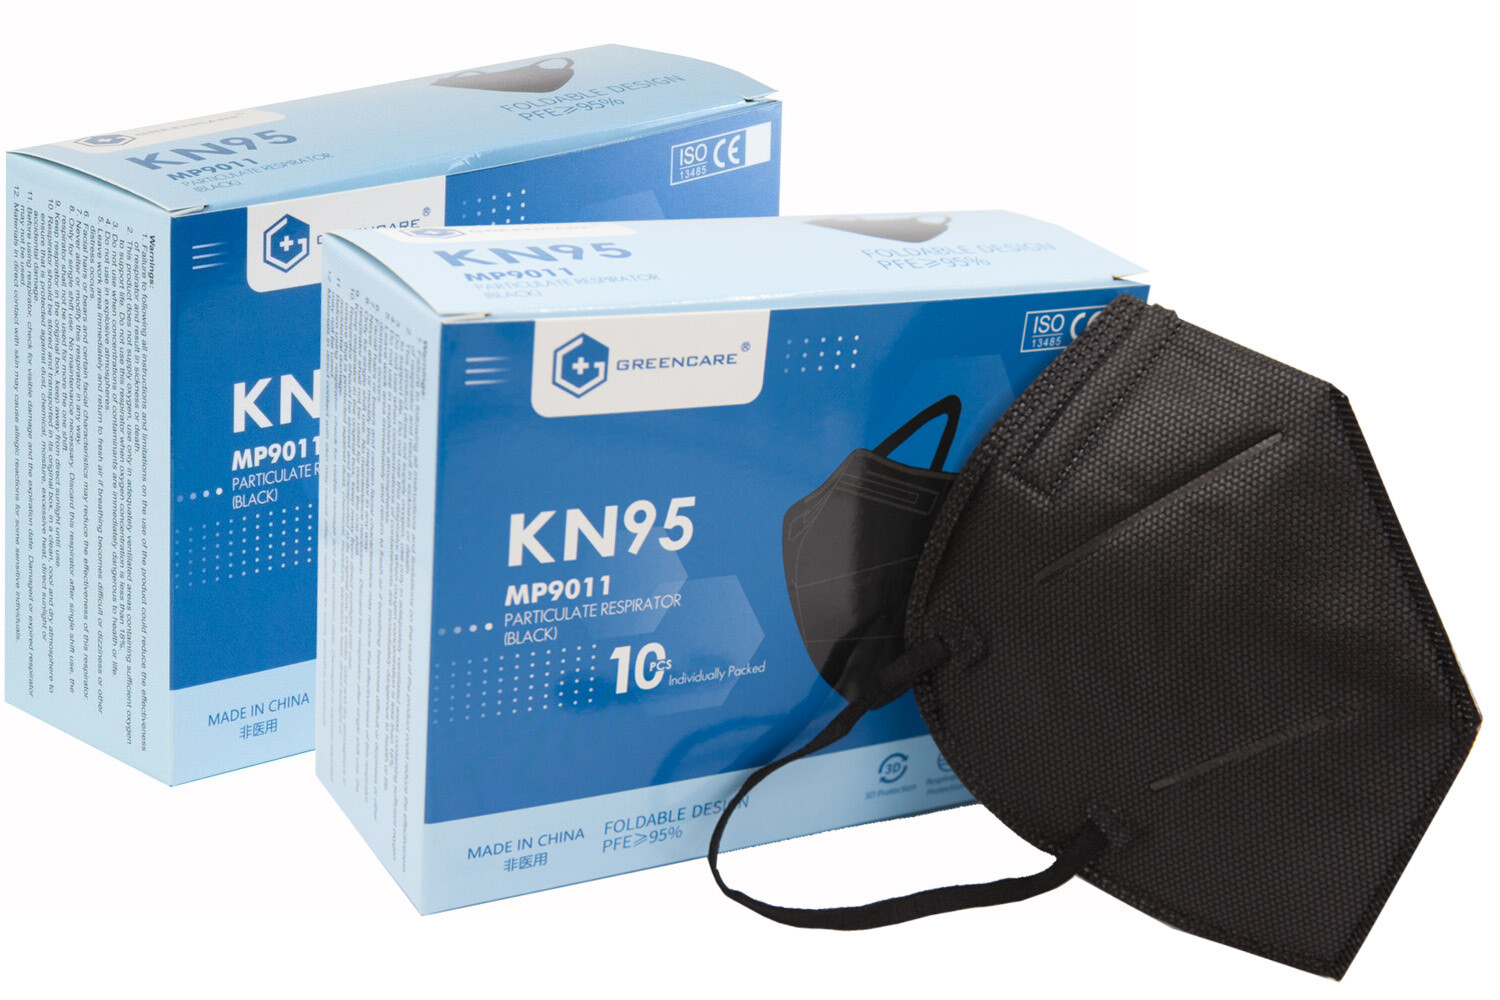 20 Greencare BLACK KN95 Face Mask (2 boxes of 10) **Individually Wrapped**